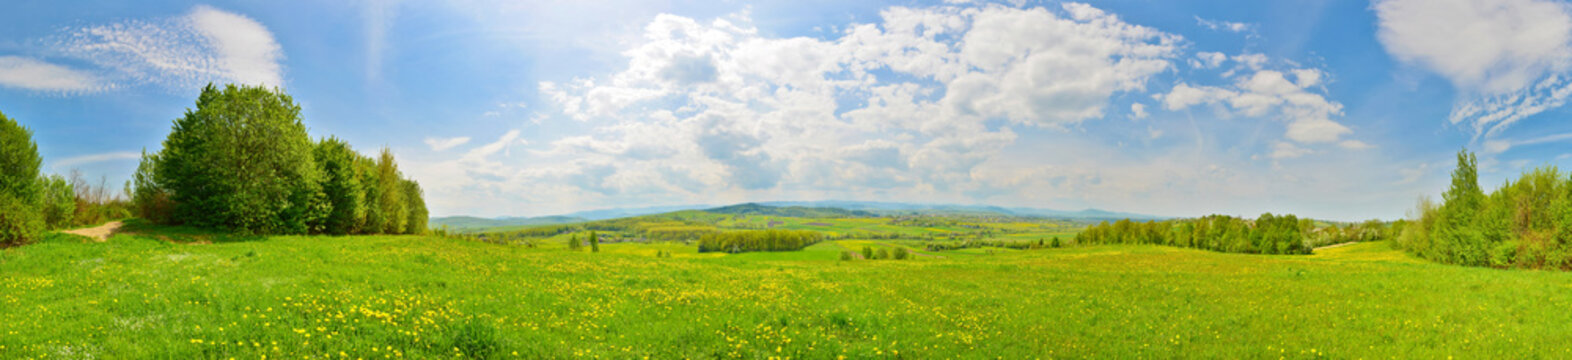 Spring countryside